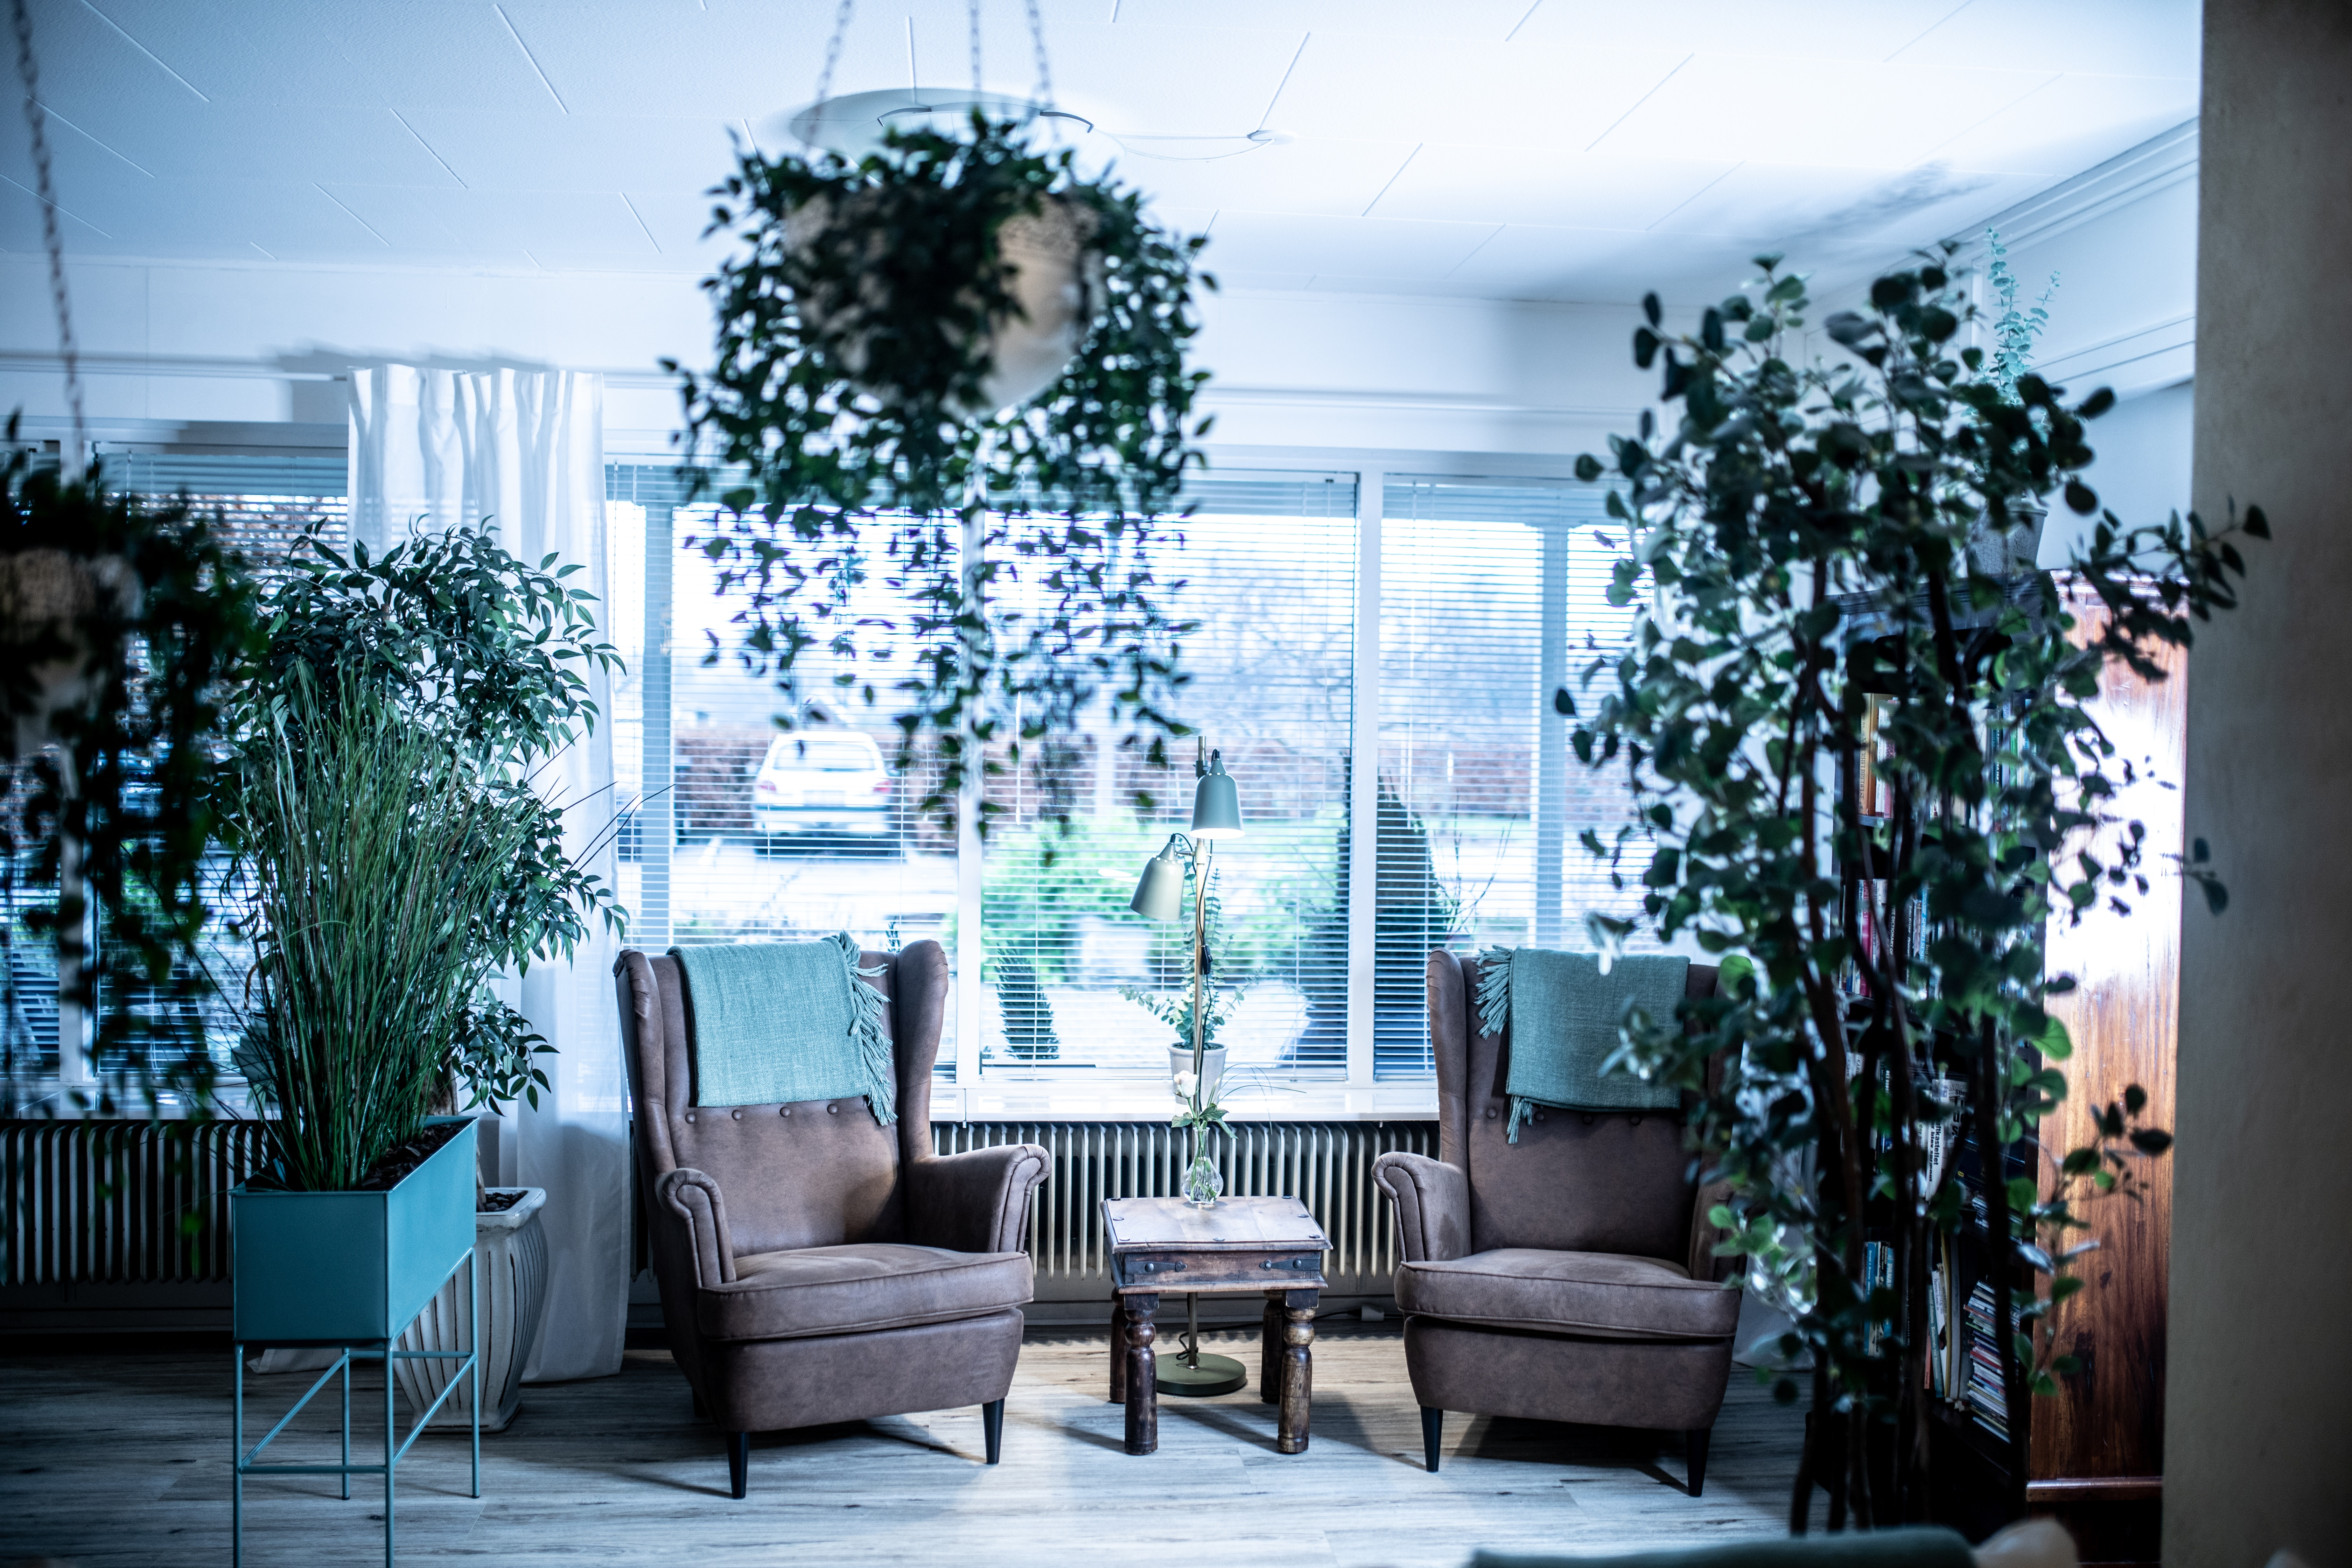 Chairs In Bright Room Decorated With Pot Plants Free Stock Photo